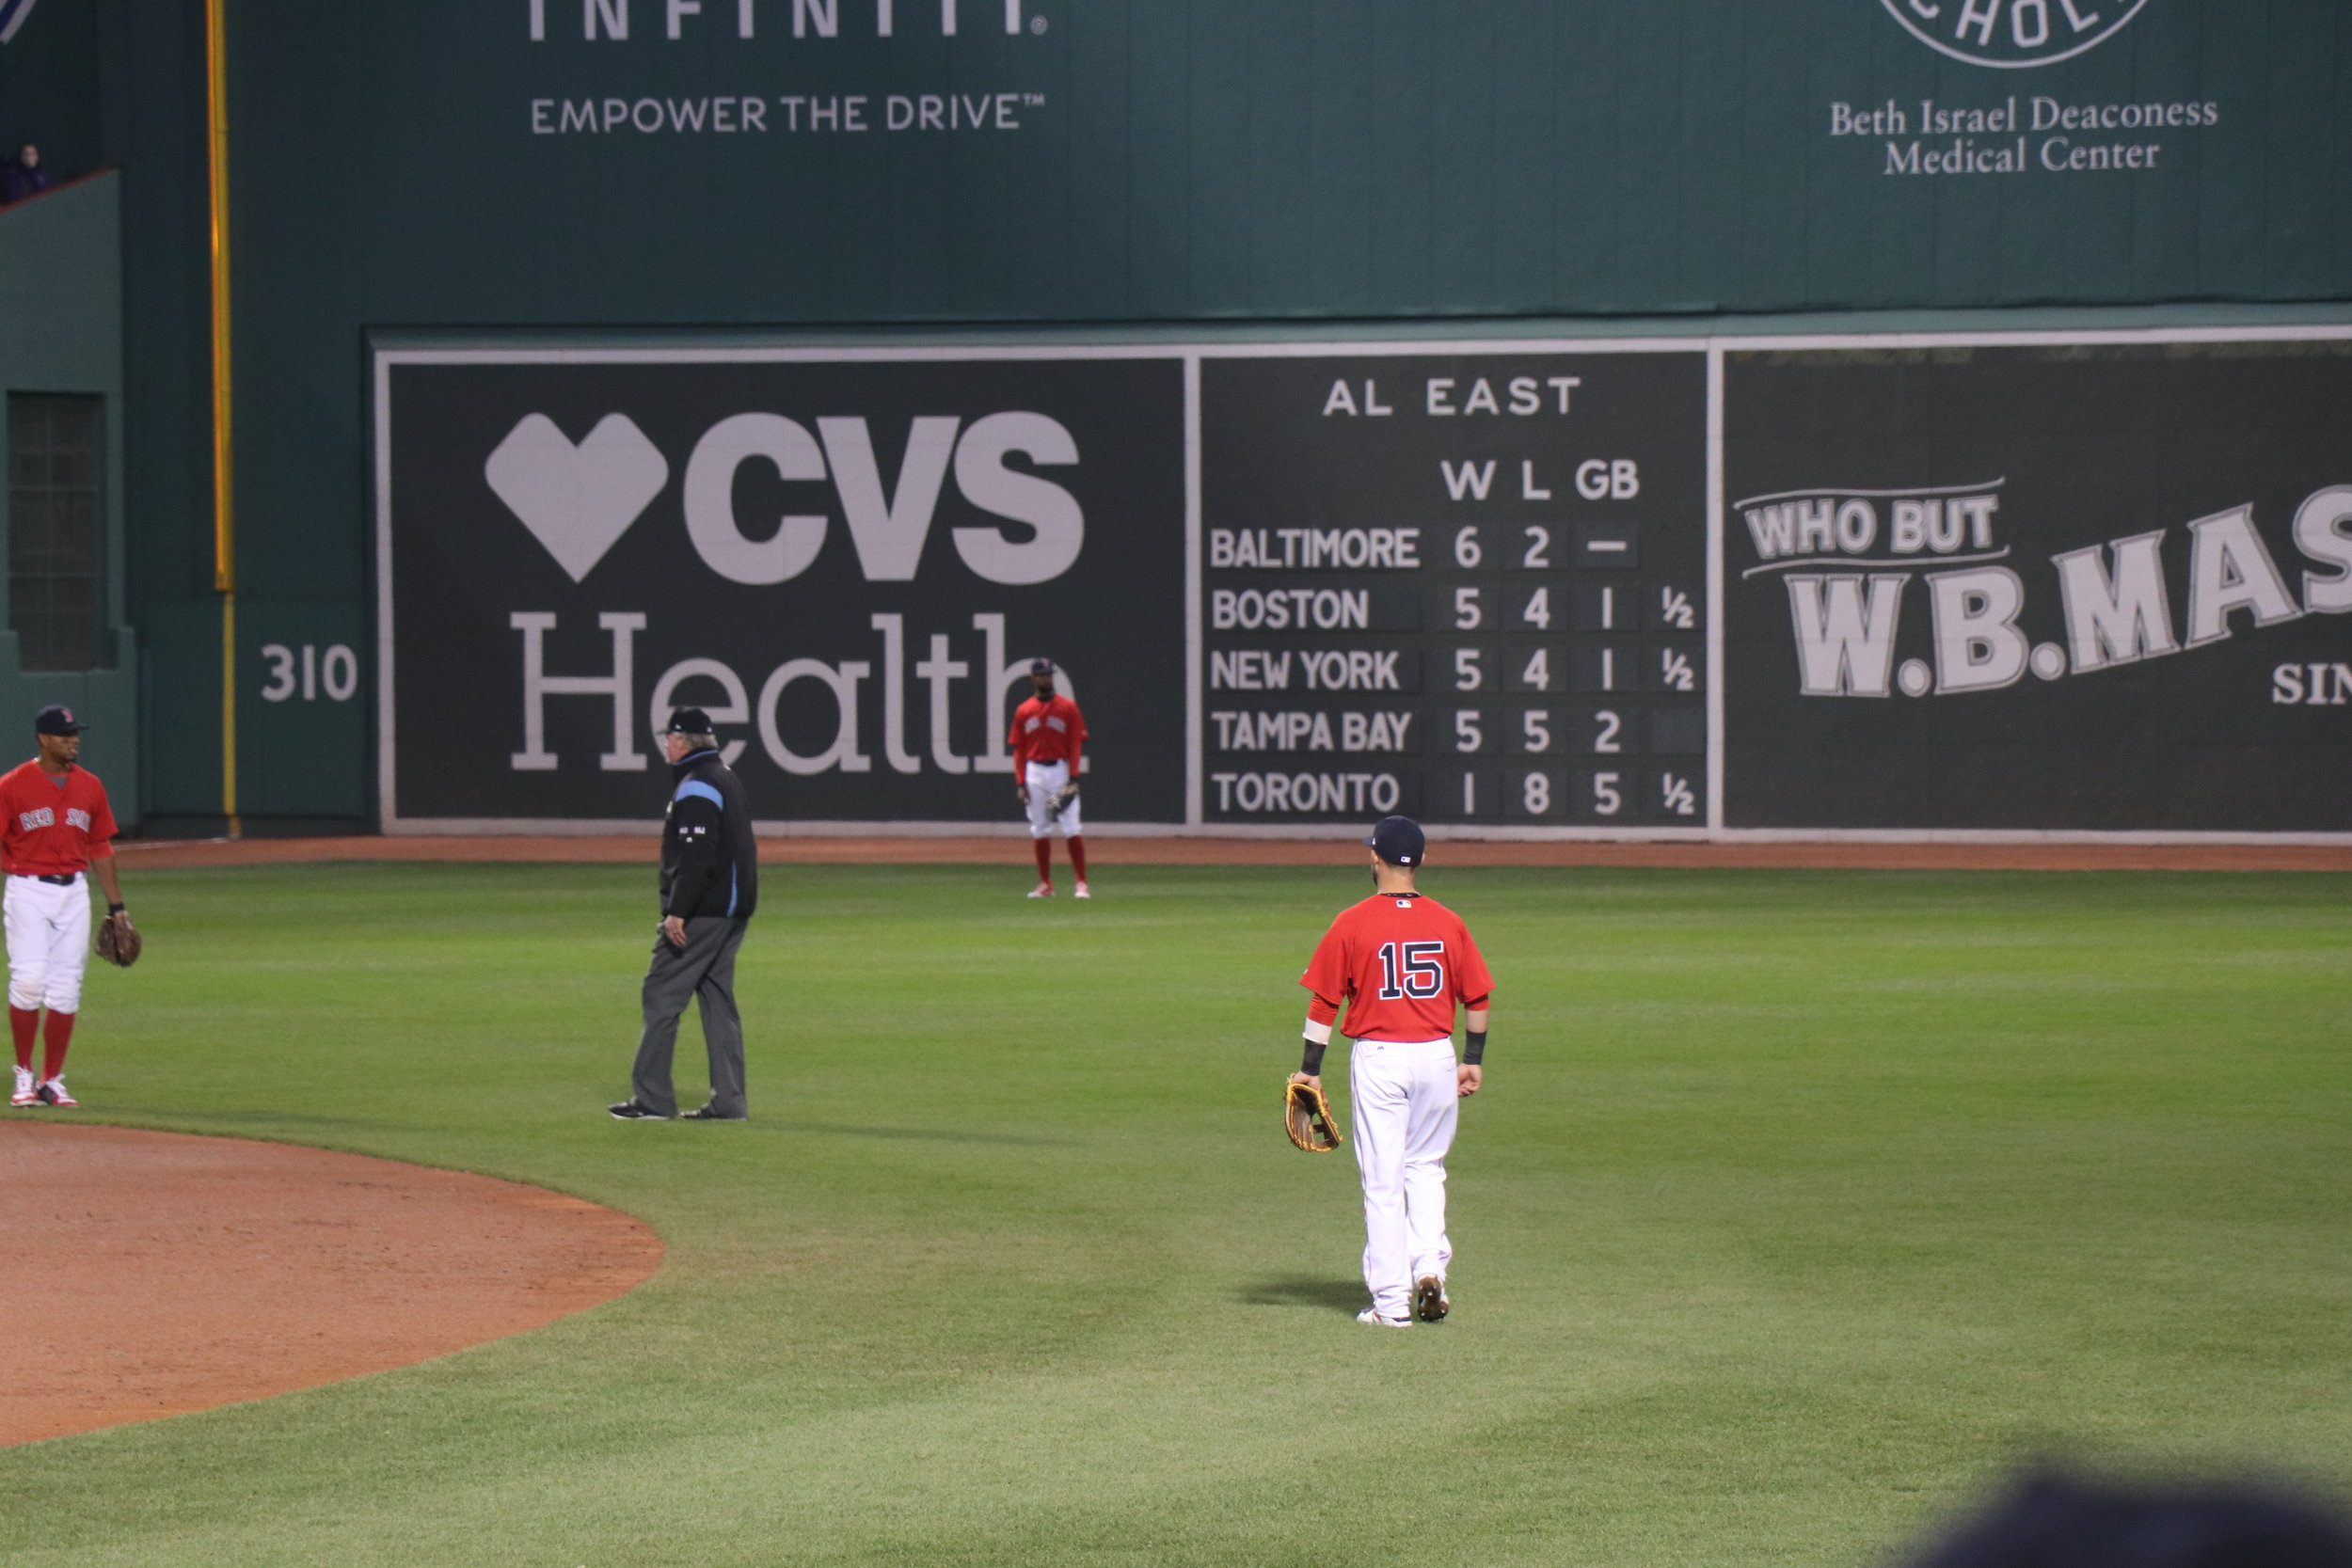 Warming up in the field before the top of the inning starts. 15 - Dustin Pedroia